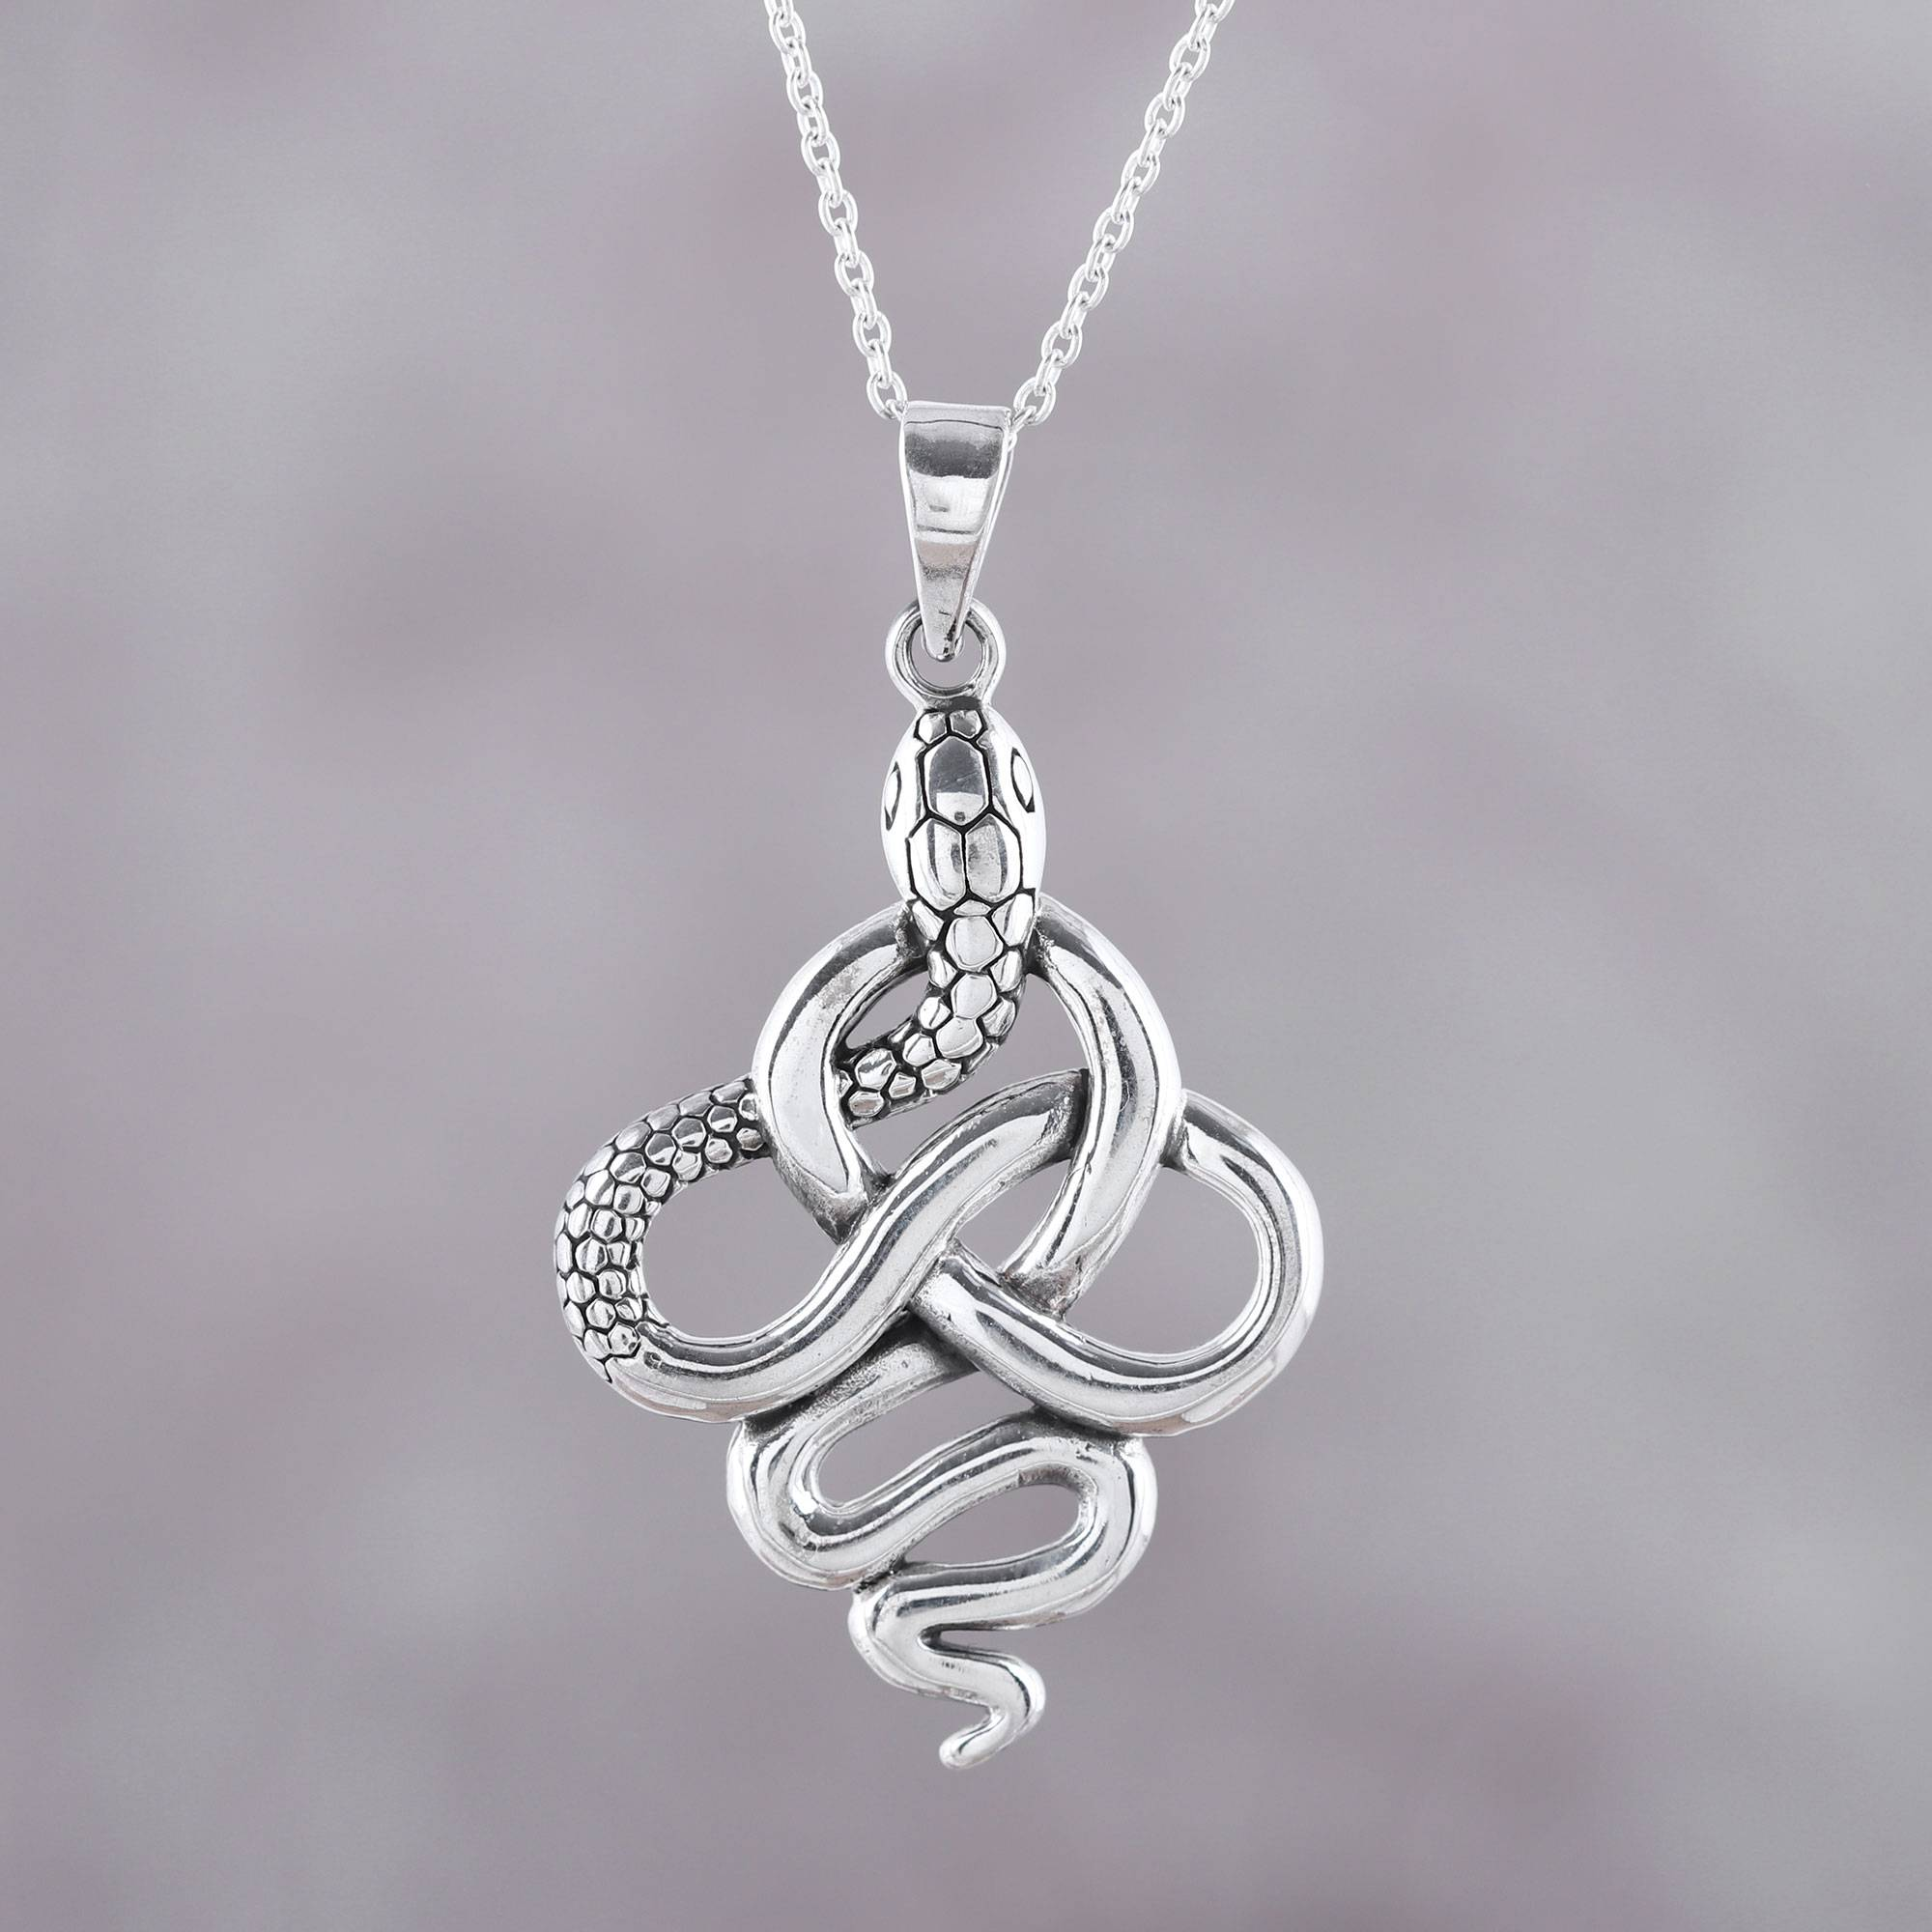 Details about  /Gold Snake pendant Necklace 925 Sterling Silver